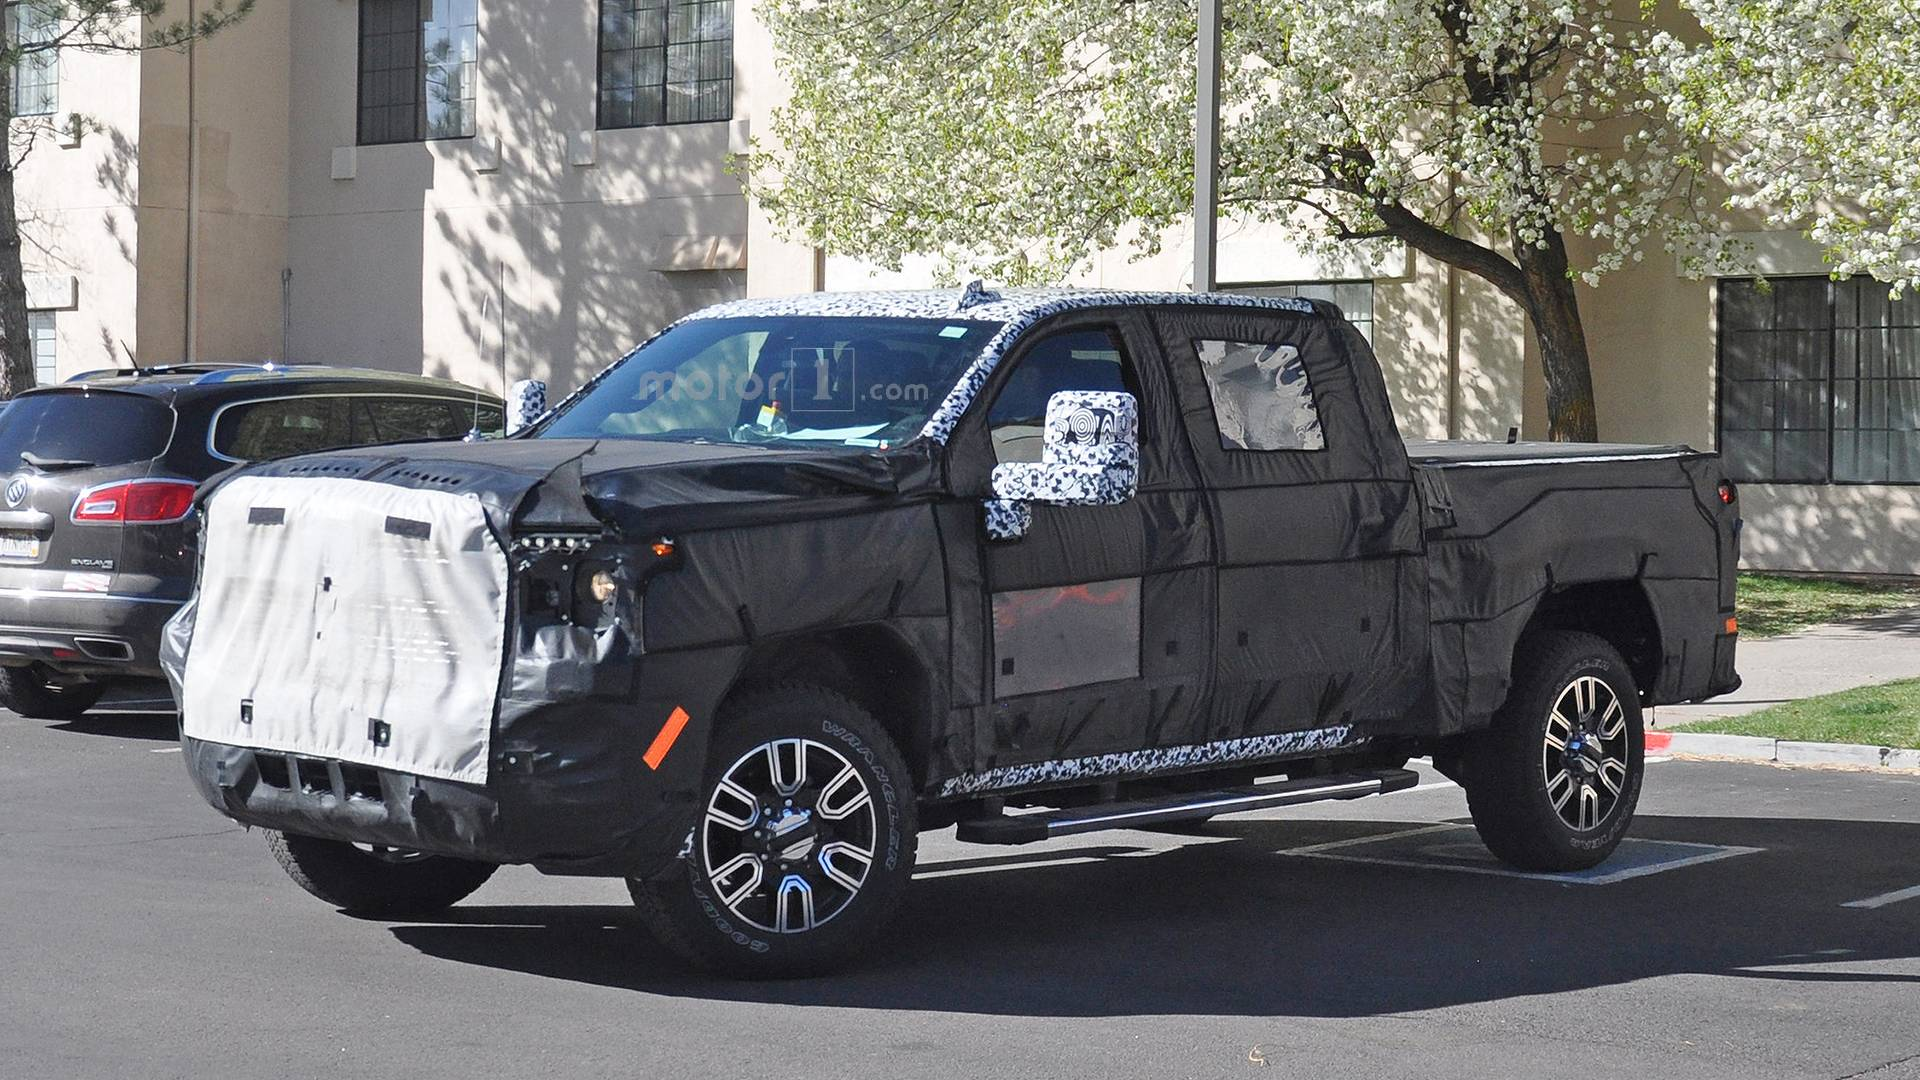 2020 Gmc Sierra Denali 2500 Hd Spied With Luxury Level Upgrades